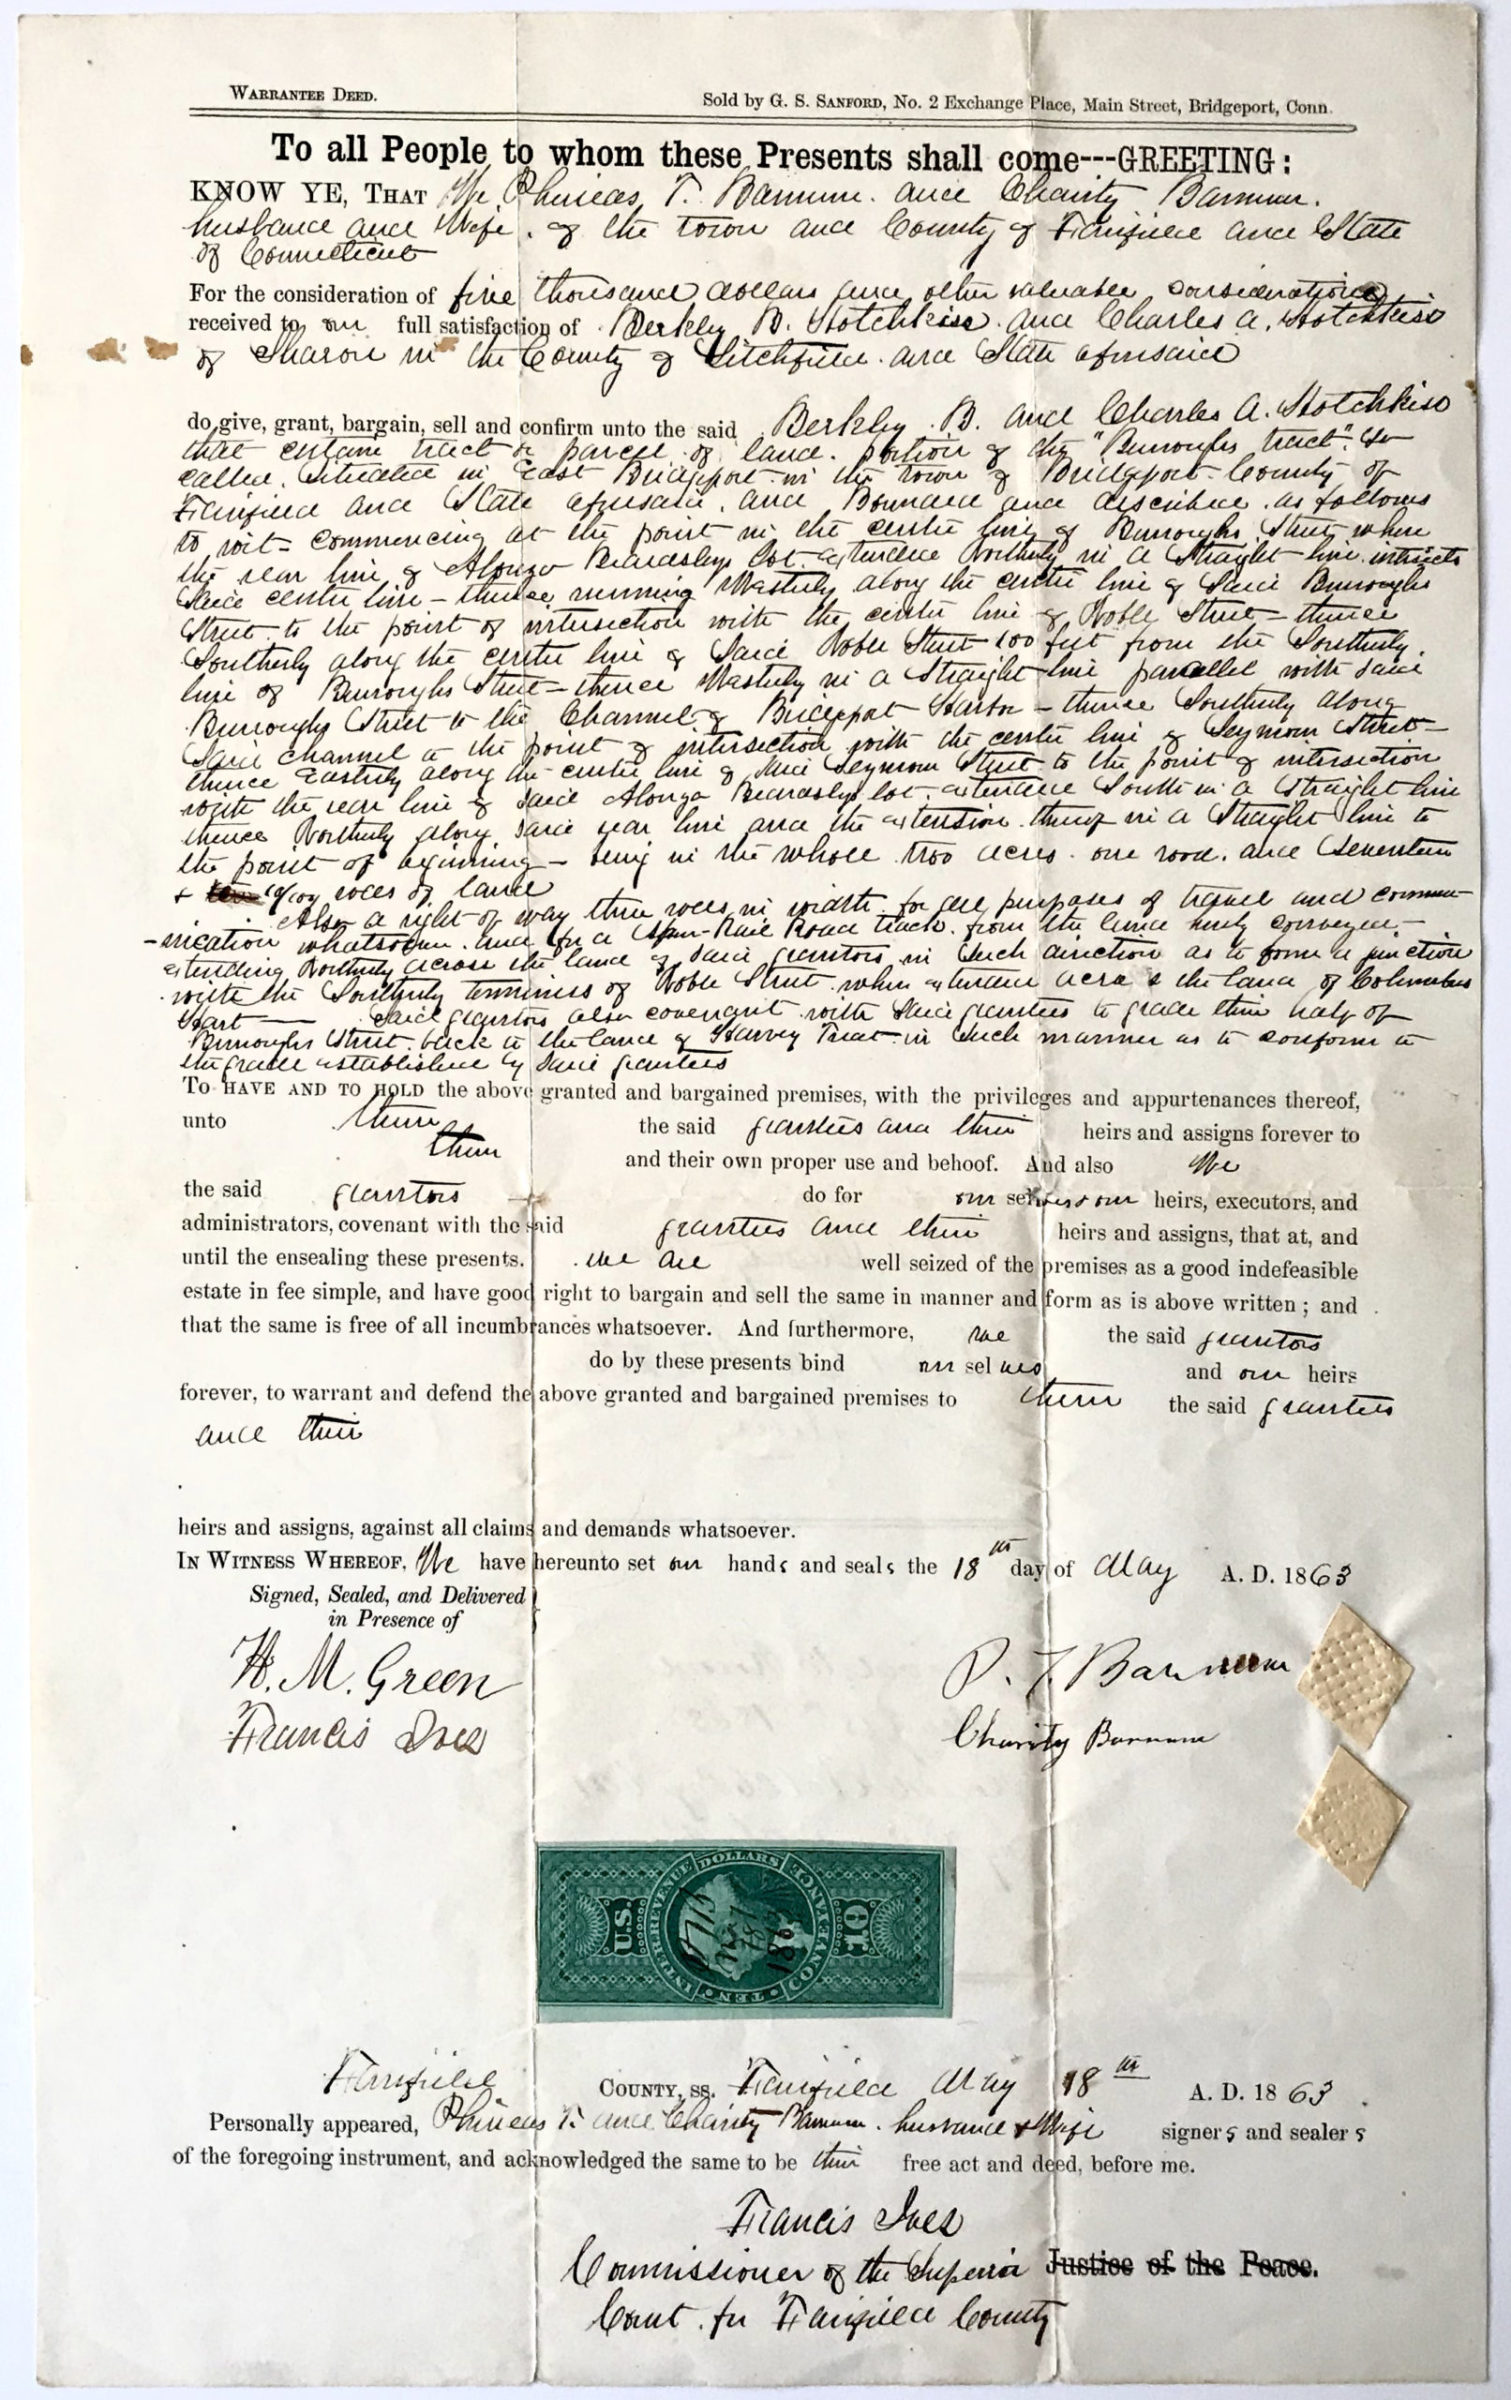 Signed Document Selling Connecticut Property to Wealthy Hotchkiss Family